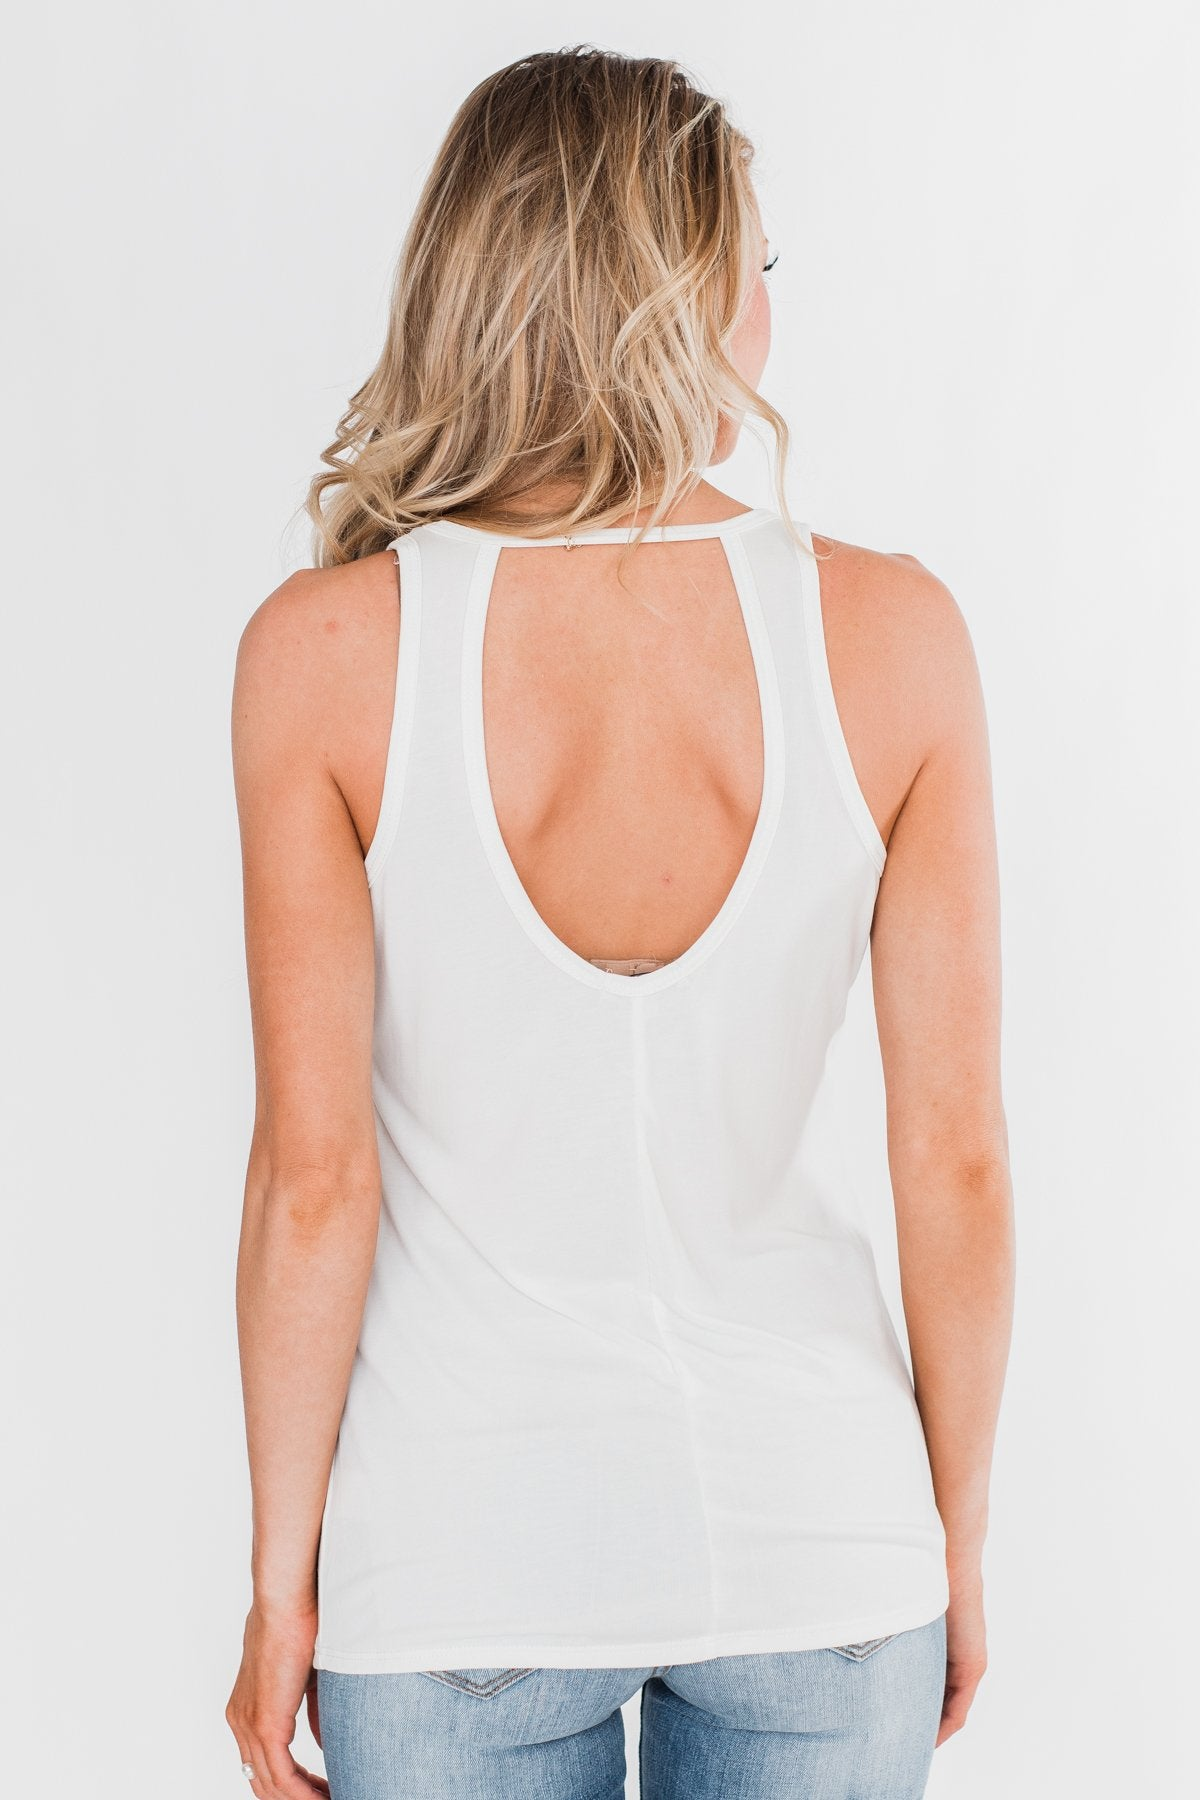 Caught In The Moment Tank Top- Ivory